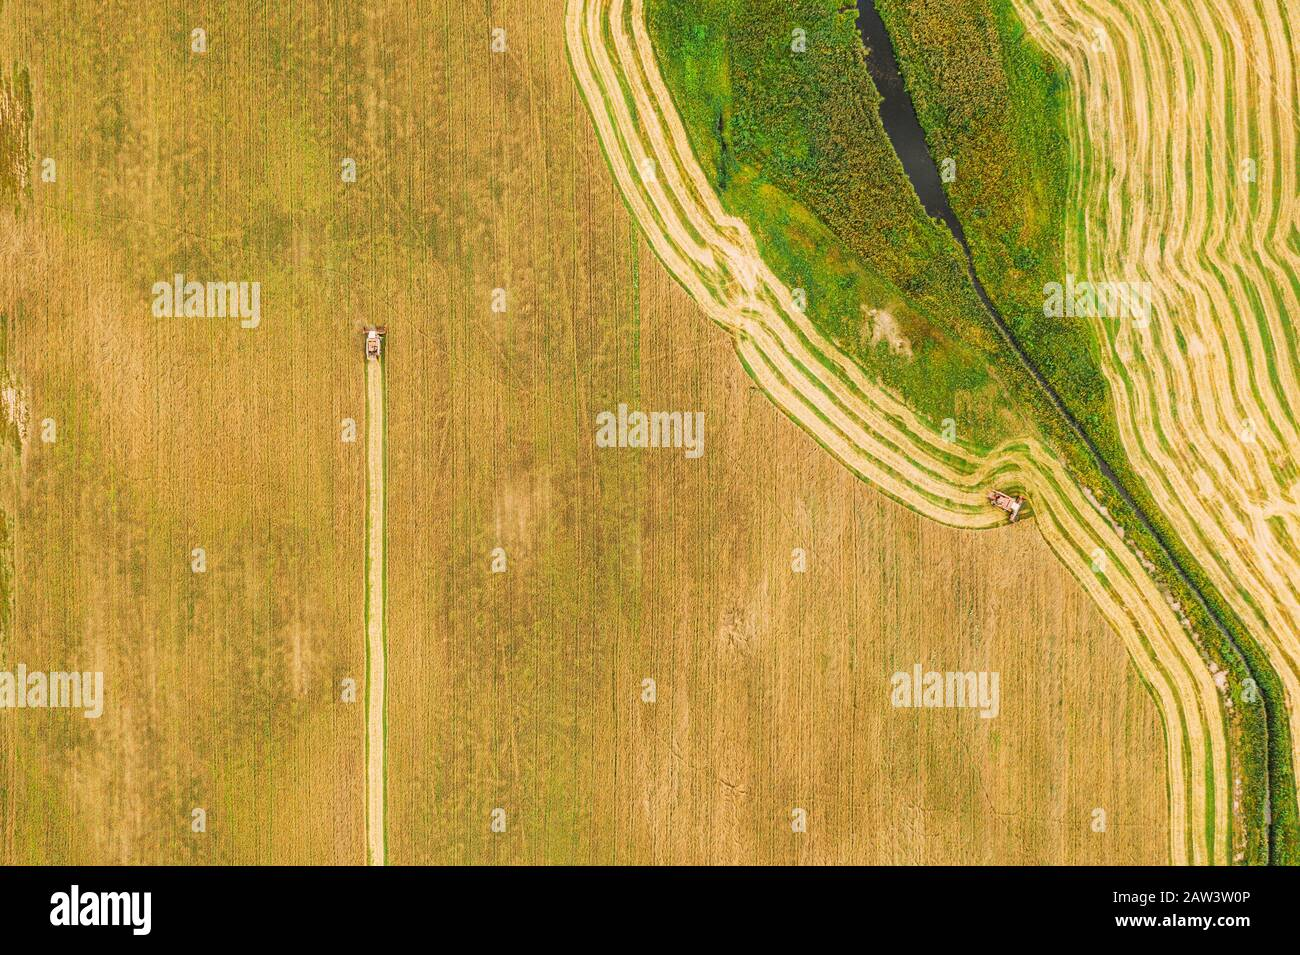 Aerial View Of Rural Landscape. Combine Harvester Working In Field, Collects Seeds. Harvesting Of Wheat In Late Summer. Agricultural Machine Collectin Stock Photo